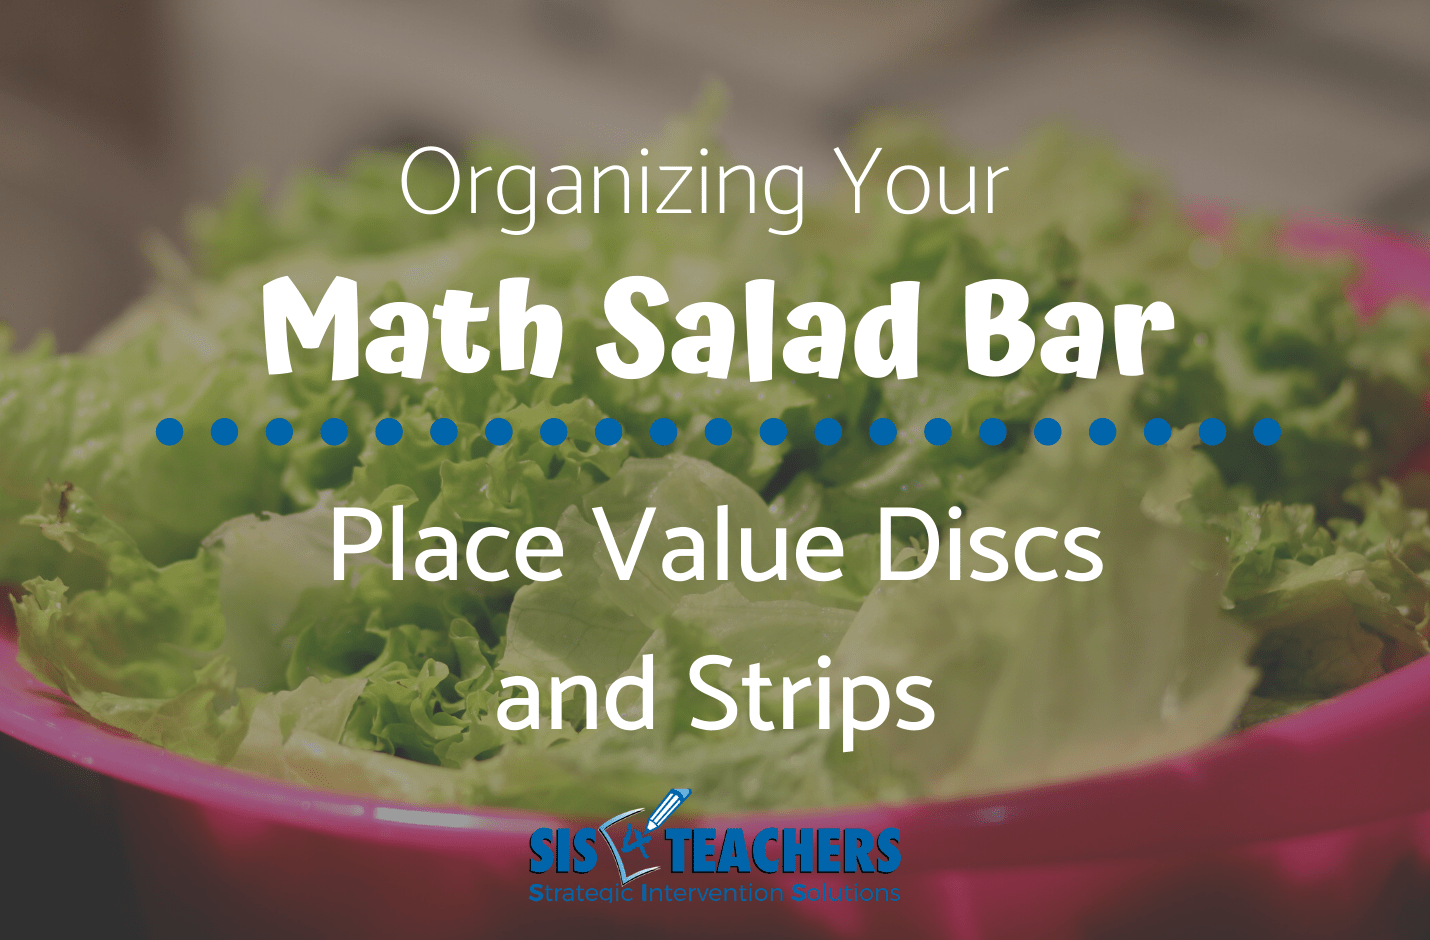 Organizing Your Math Salad Bar: Place Value Discs and Strips